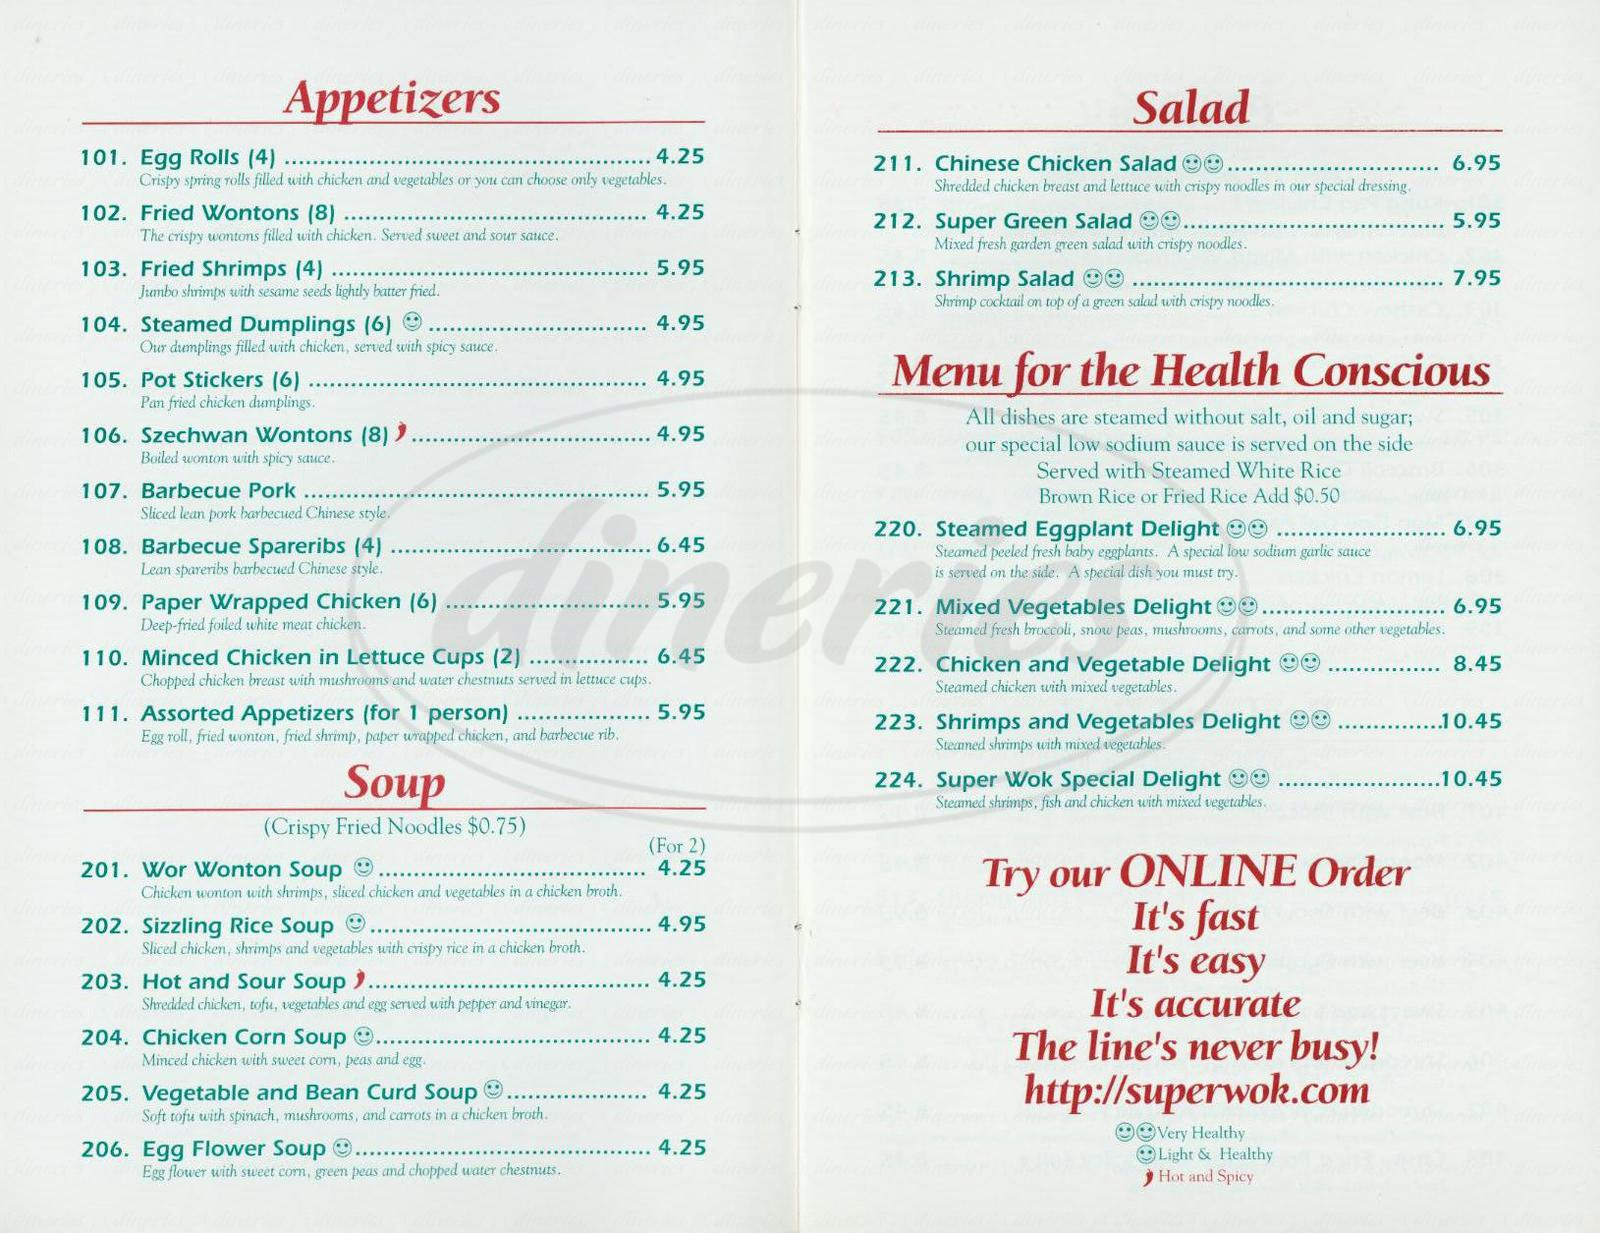 menu for Super Wok